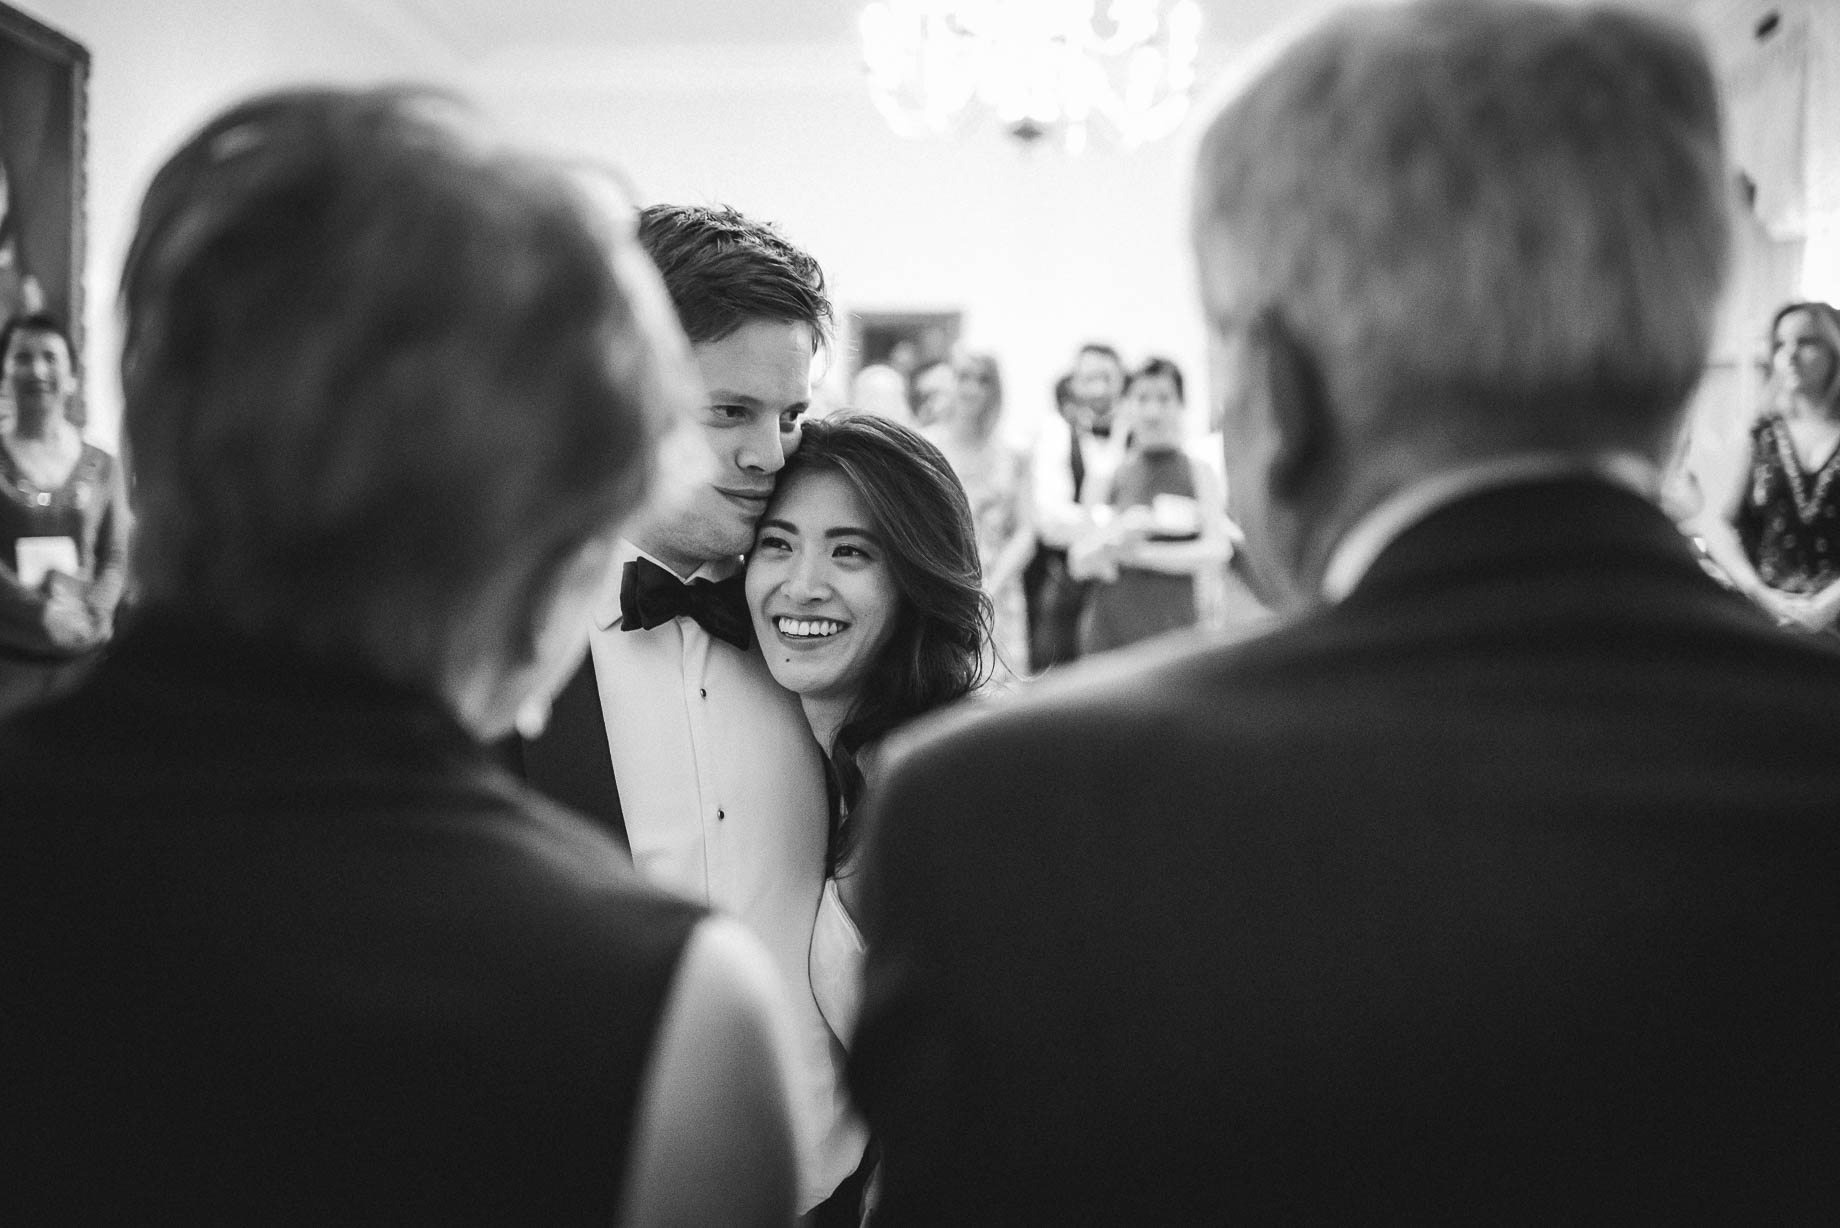 Kew Gardens wedding photography - Guy Collier Photography - Gloria and Frederik (162 of 173)